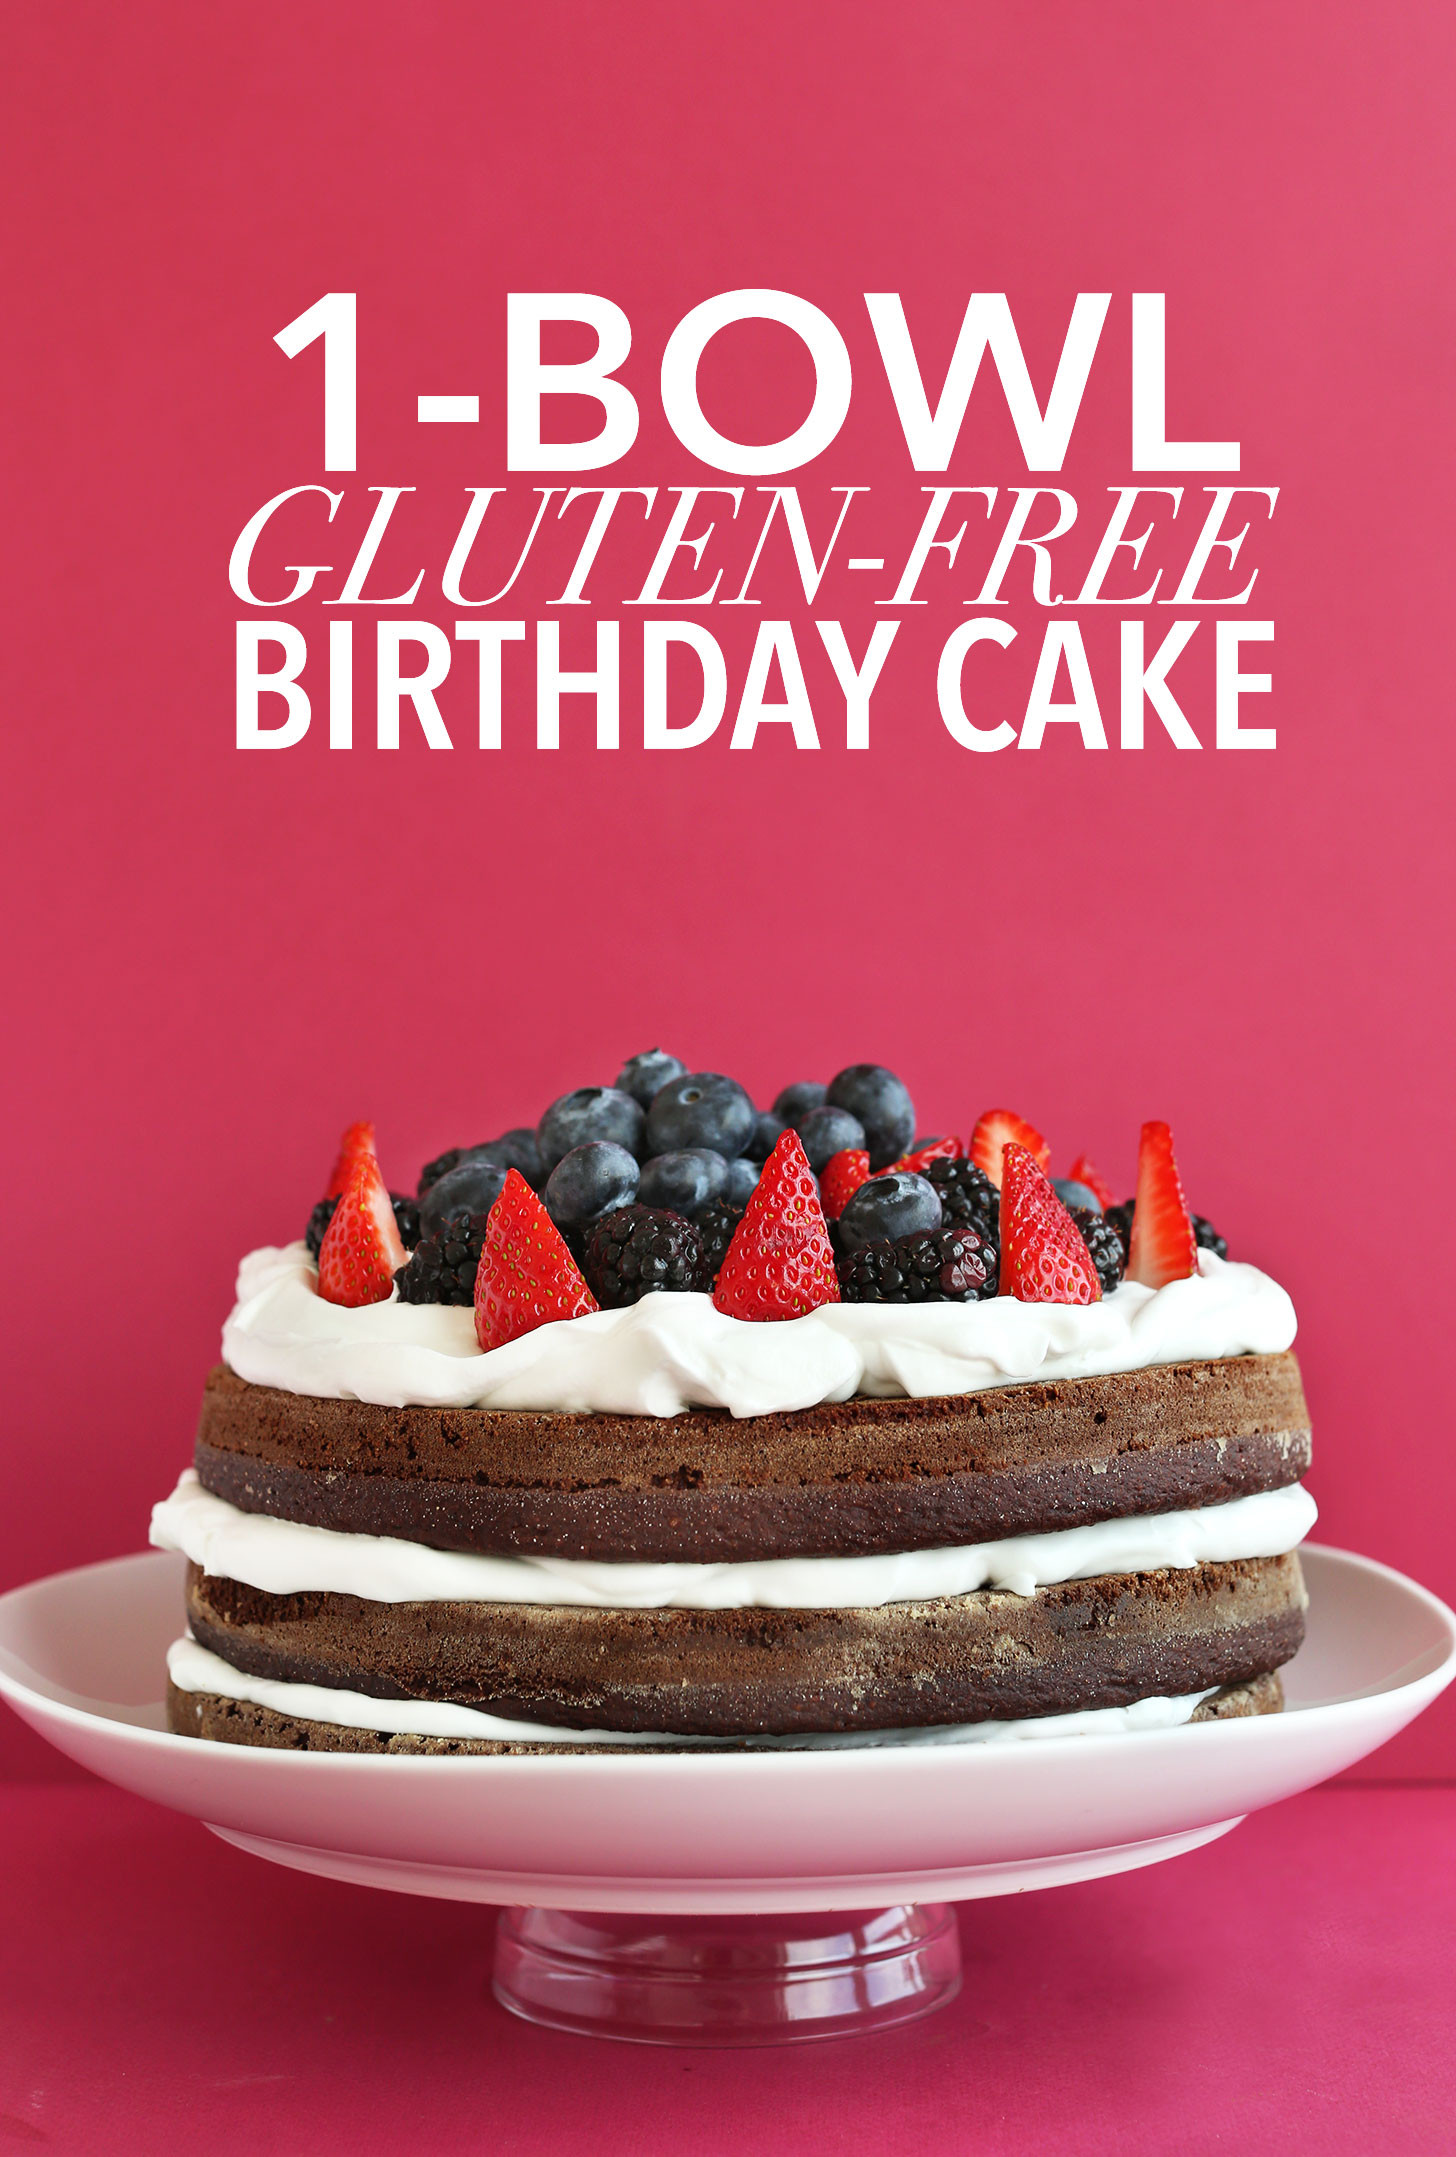 Best ideas about Dairy Free Birthday Cake . Save or Pin Gluten Free Birthday Cake Now.